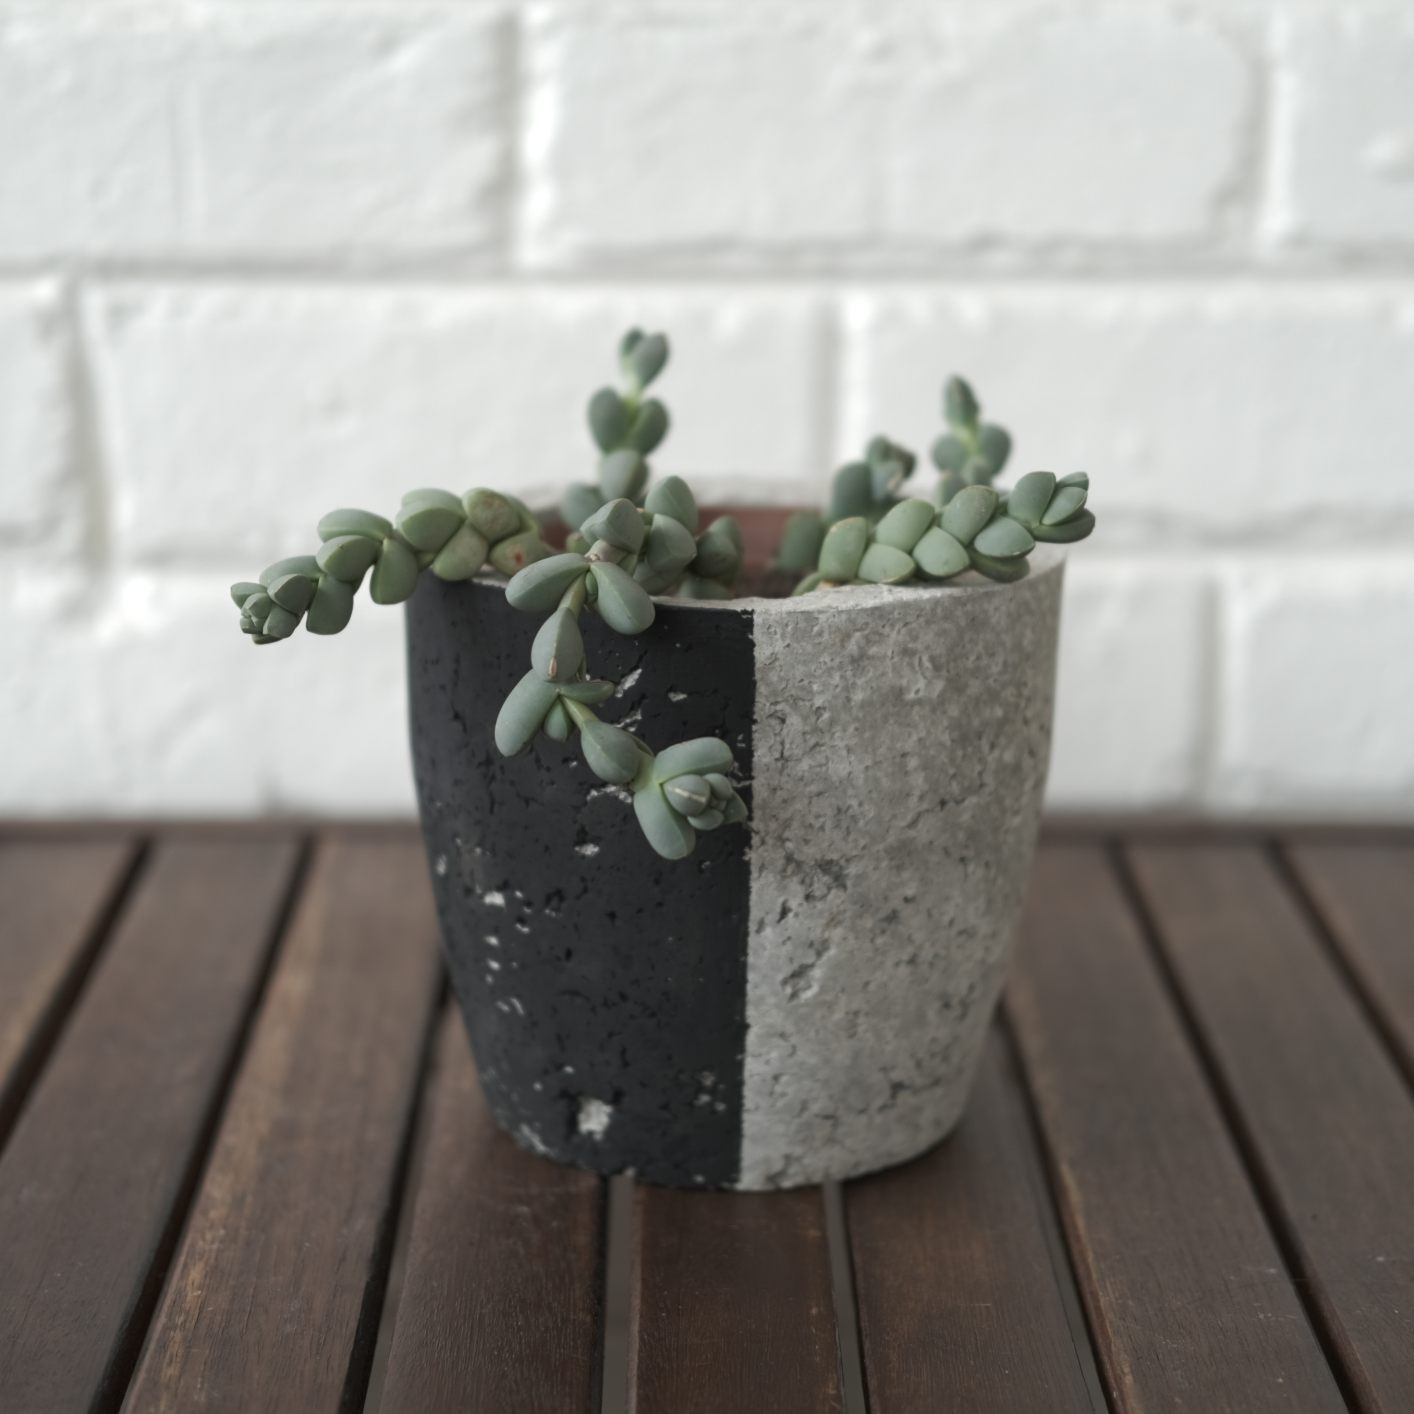 Cement-look with black plant pot